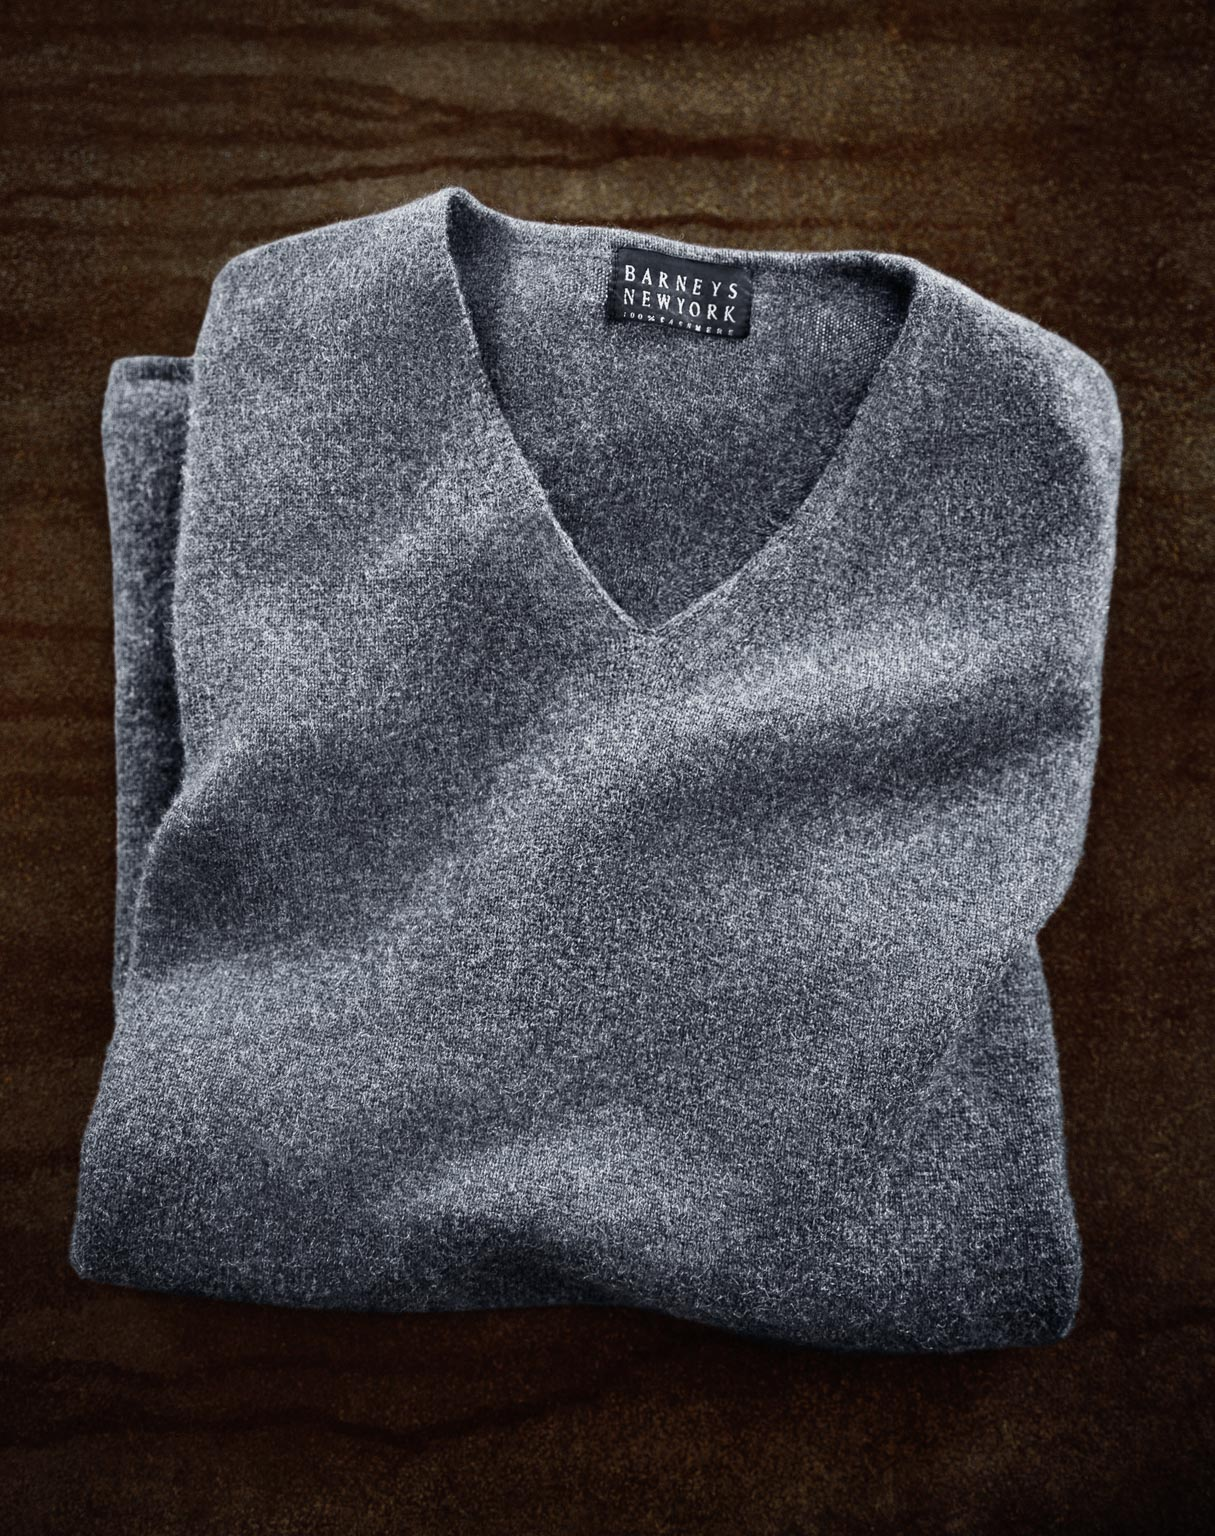 025_cashmere_sweater_V5h